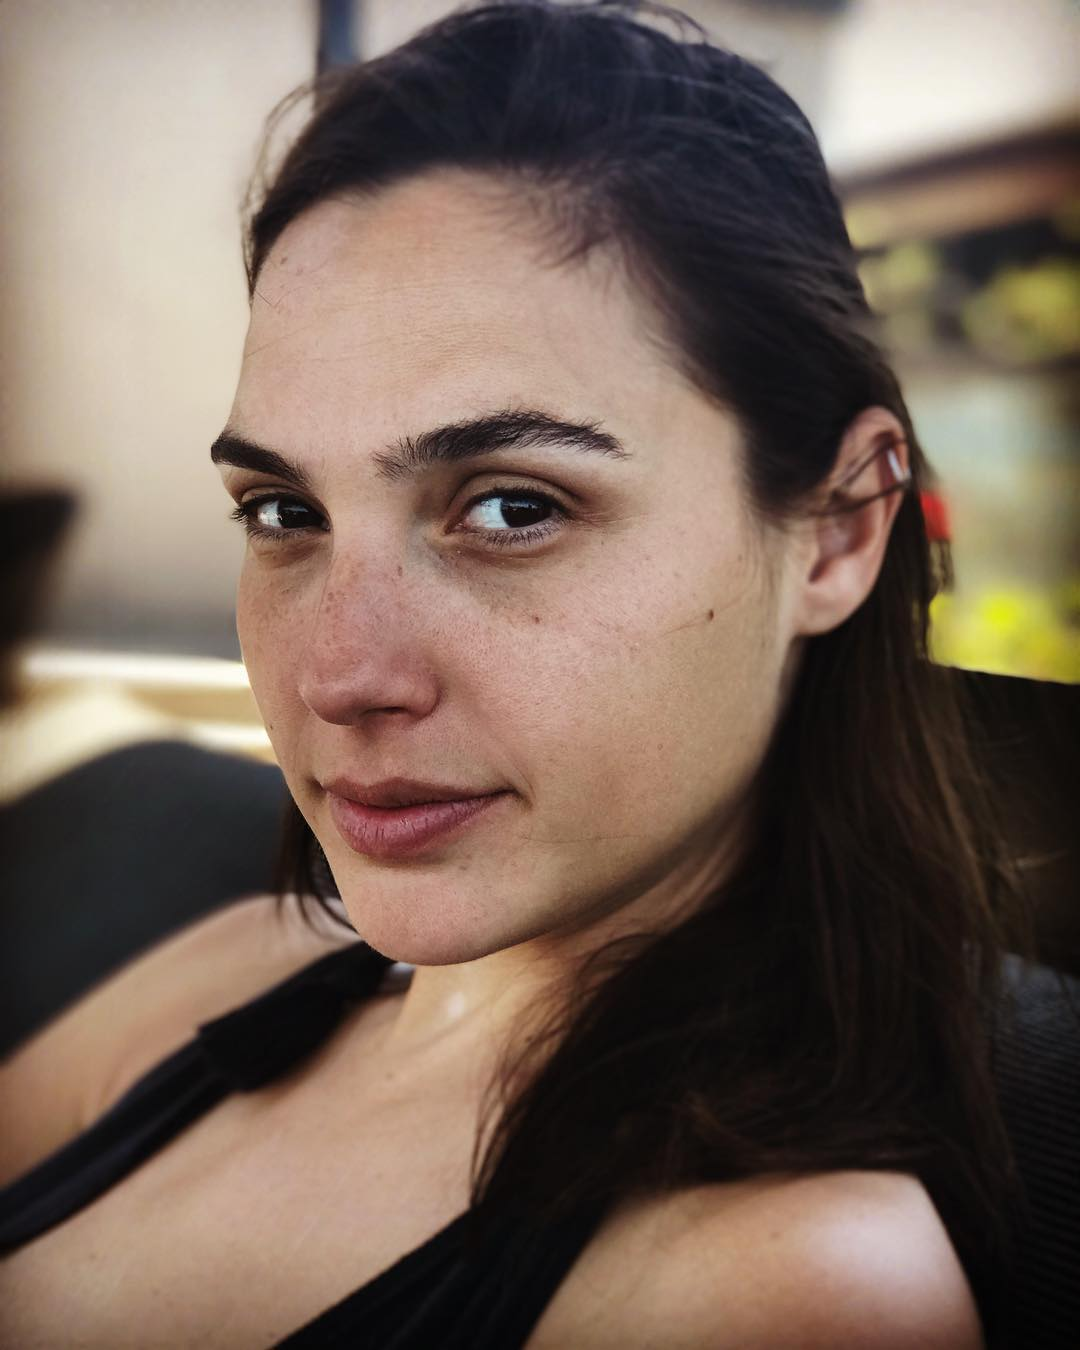 Gal Gadot posts freshfaced photo and talks motherhood - Reality TV World